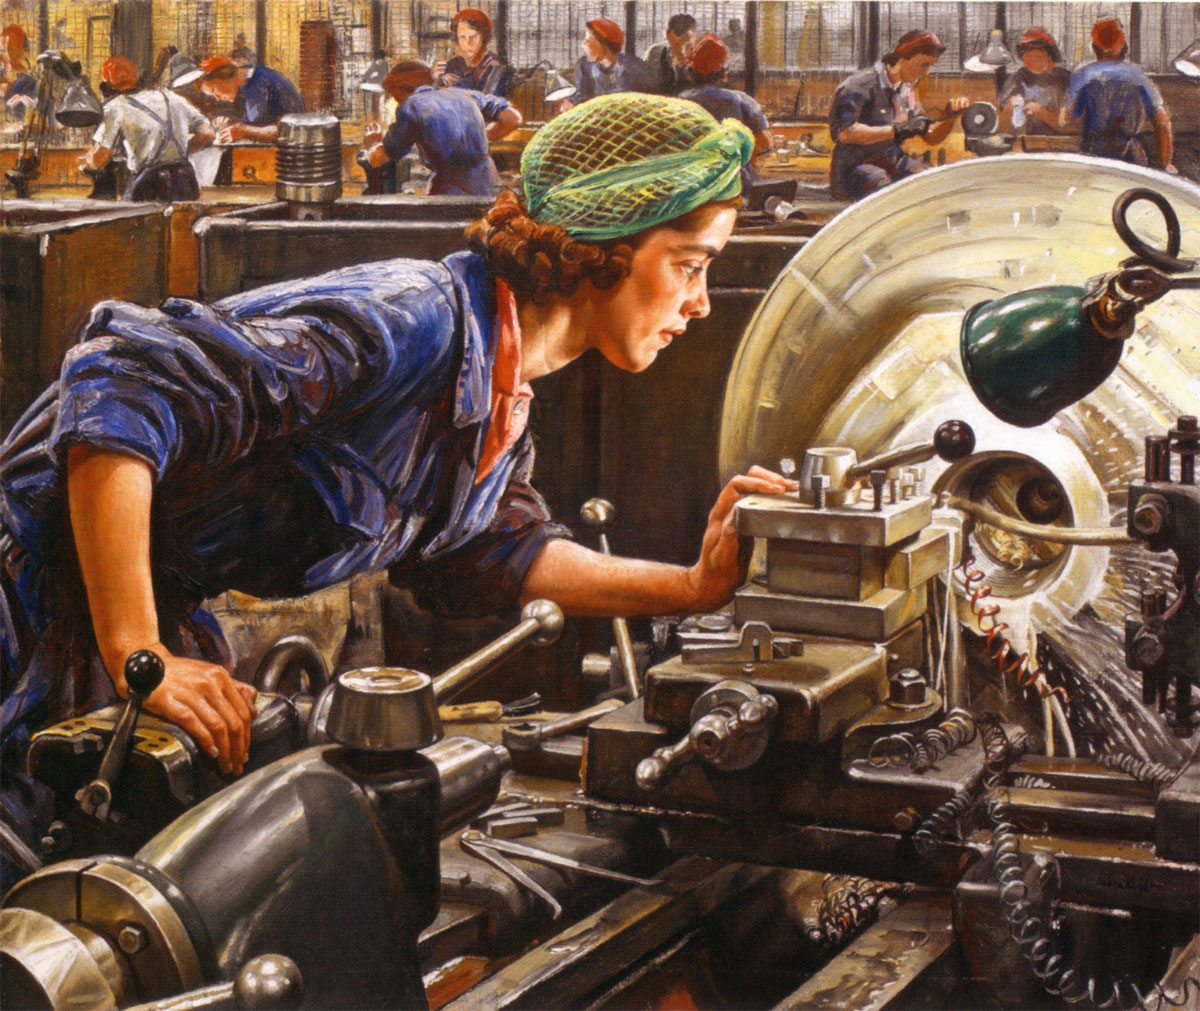 Work of females during World Wars to be looked at in concert